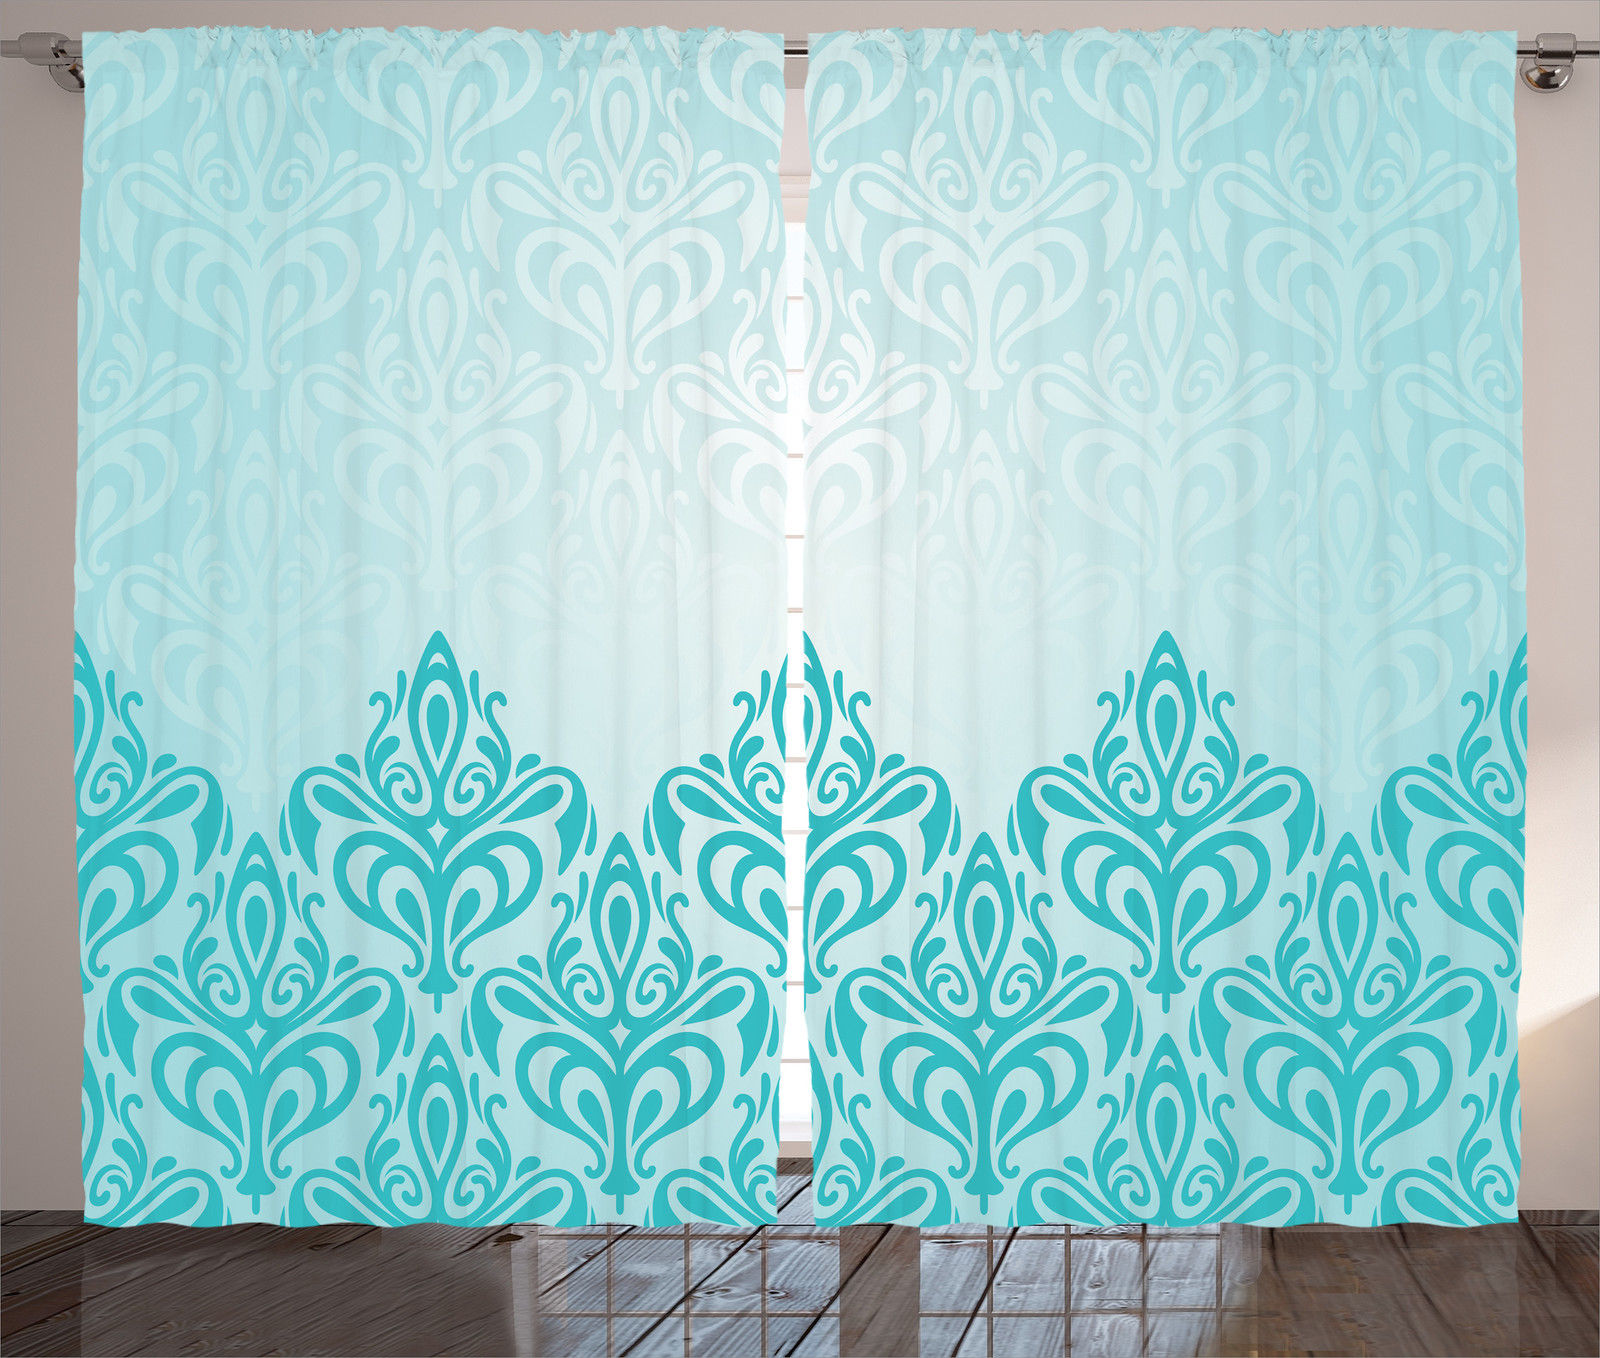 Turquoise Decor Curtains 2 Panels Set, Decorative Retro Medieval European  Victorian Gradient Royal Pale Patterns Part 97